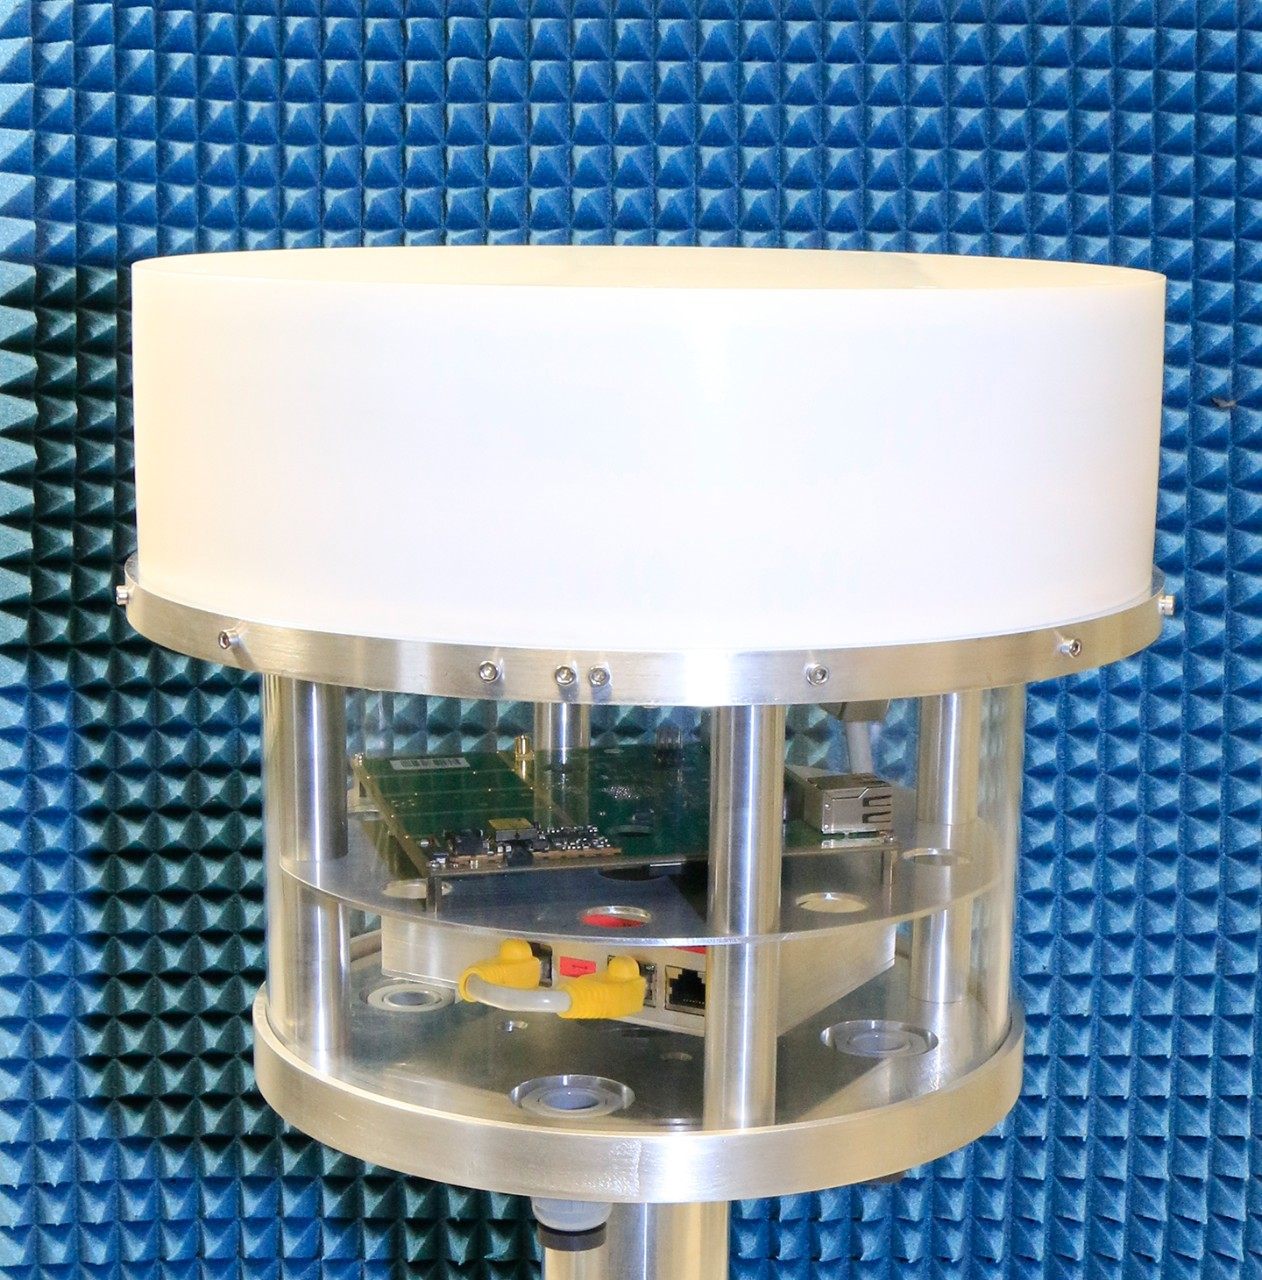 The Q-band prototype with housing for the communications and control electronics below the antenna.